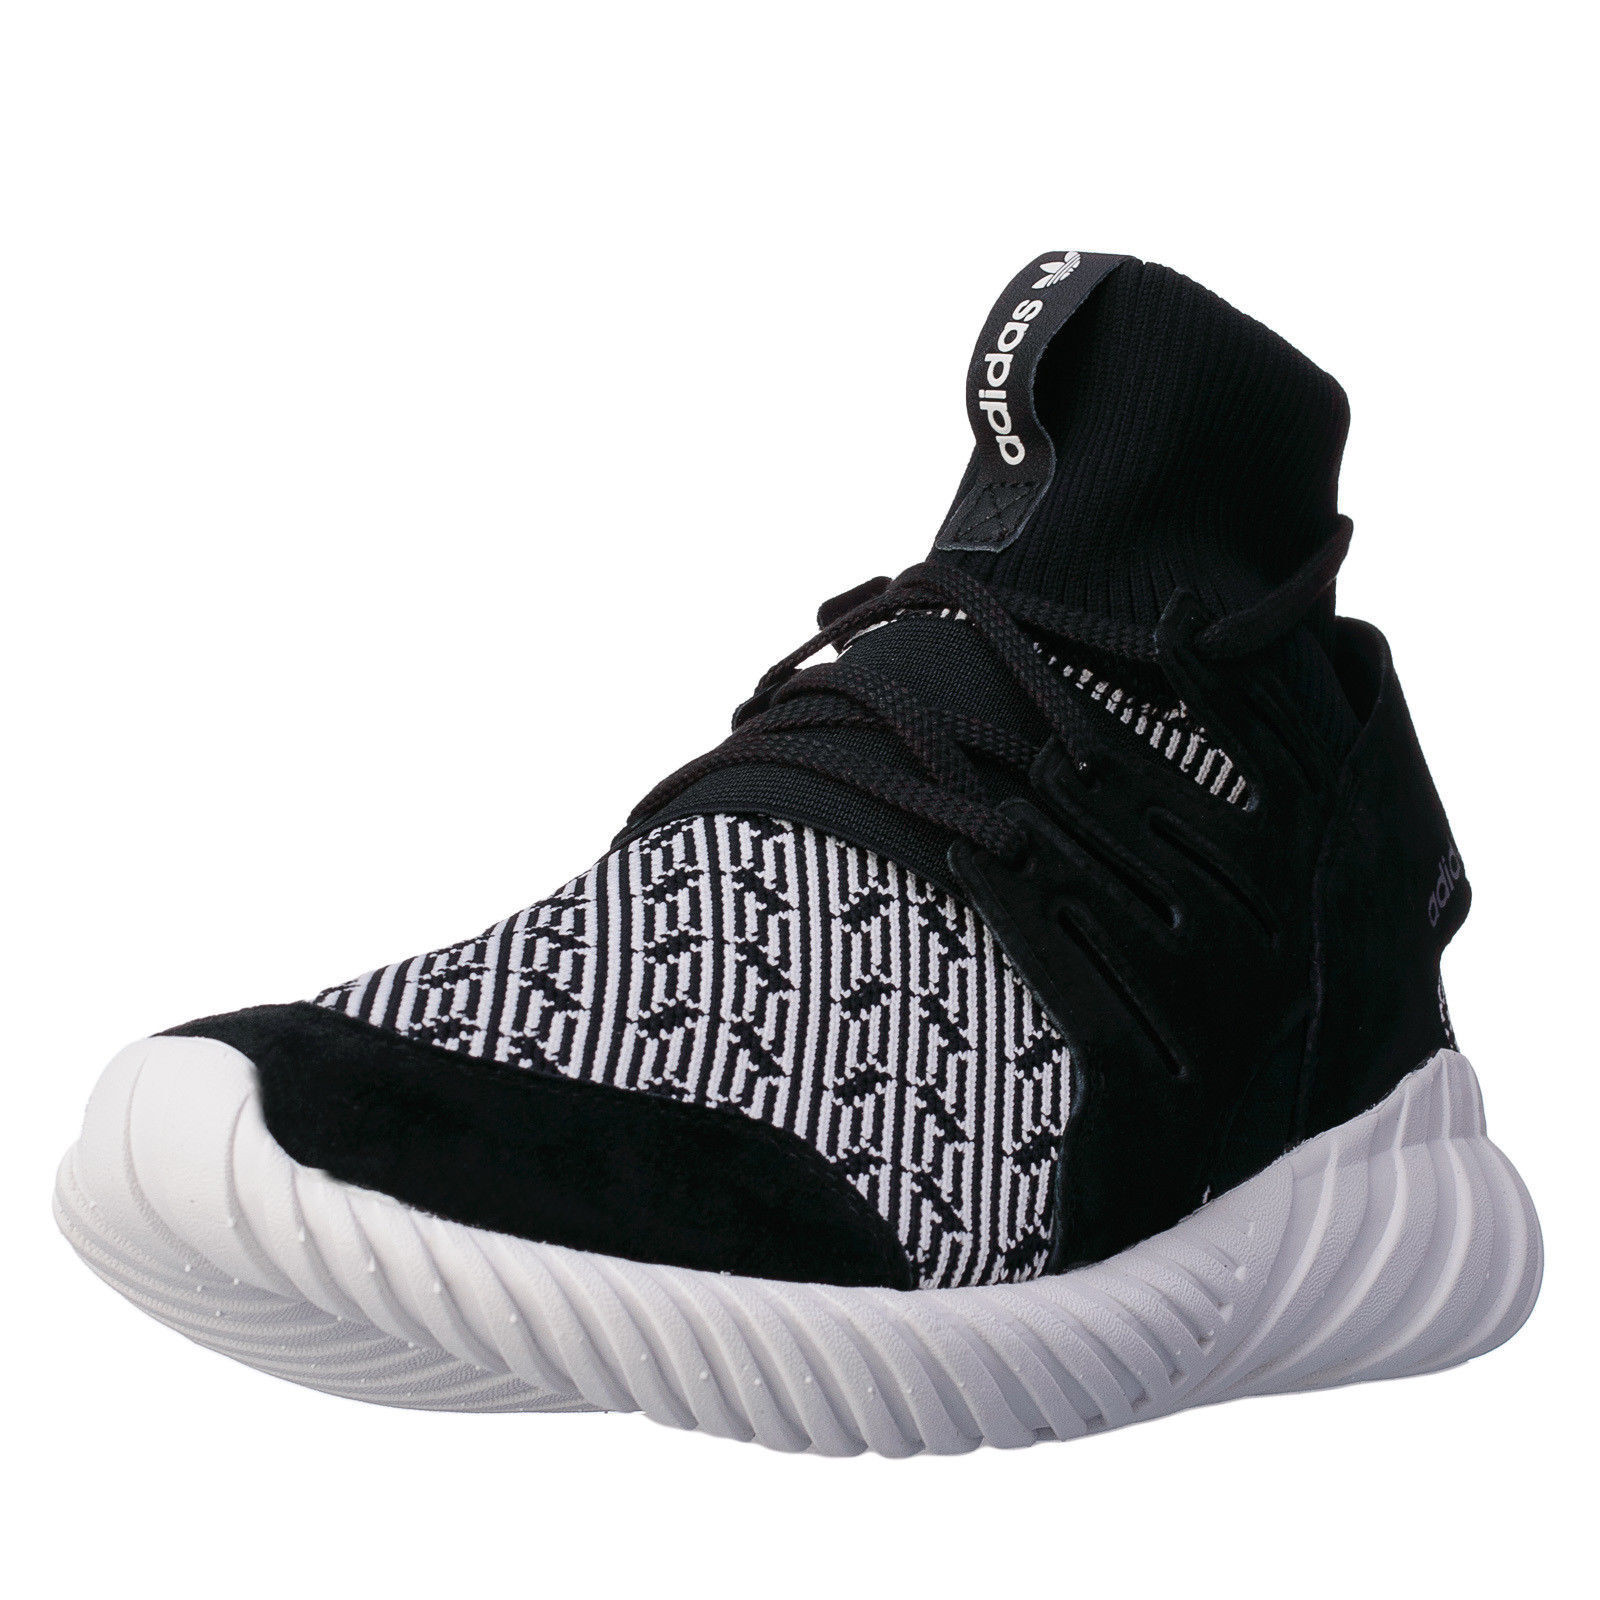 NIB ADIDAS Mens 10 TUBULAR DOOM PK PRIMEKNIT S80096 LIFESTYLE CASUAL SHOES Price reduction Cheap women's shoes women's shoes